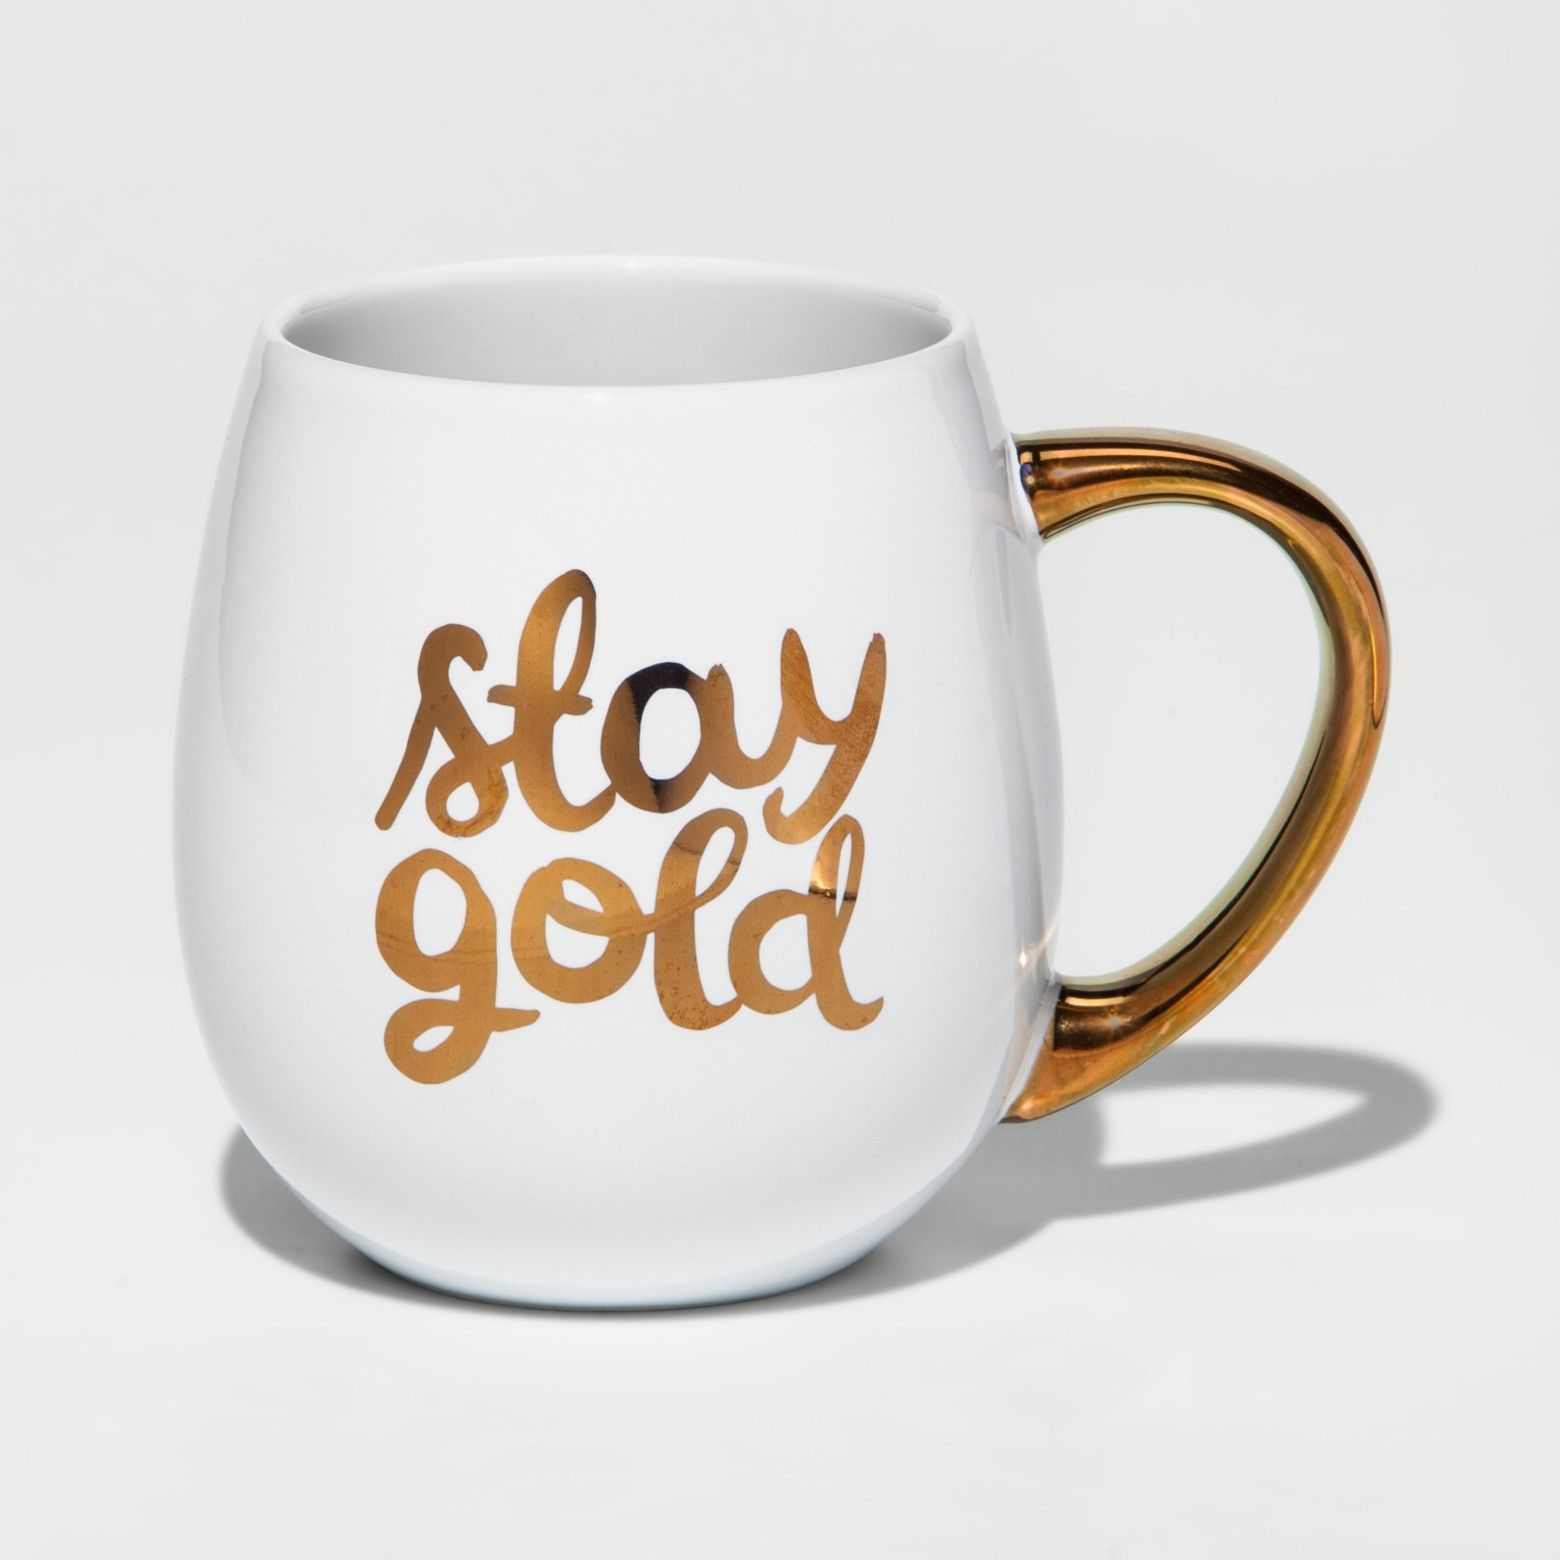 check out this stay gold mug you can find it at target for only 599 mugs gifts christmas shopping commissionlink